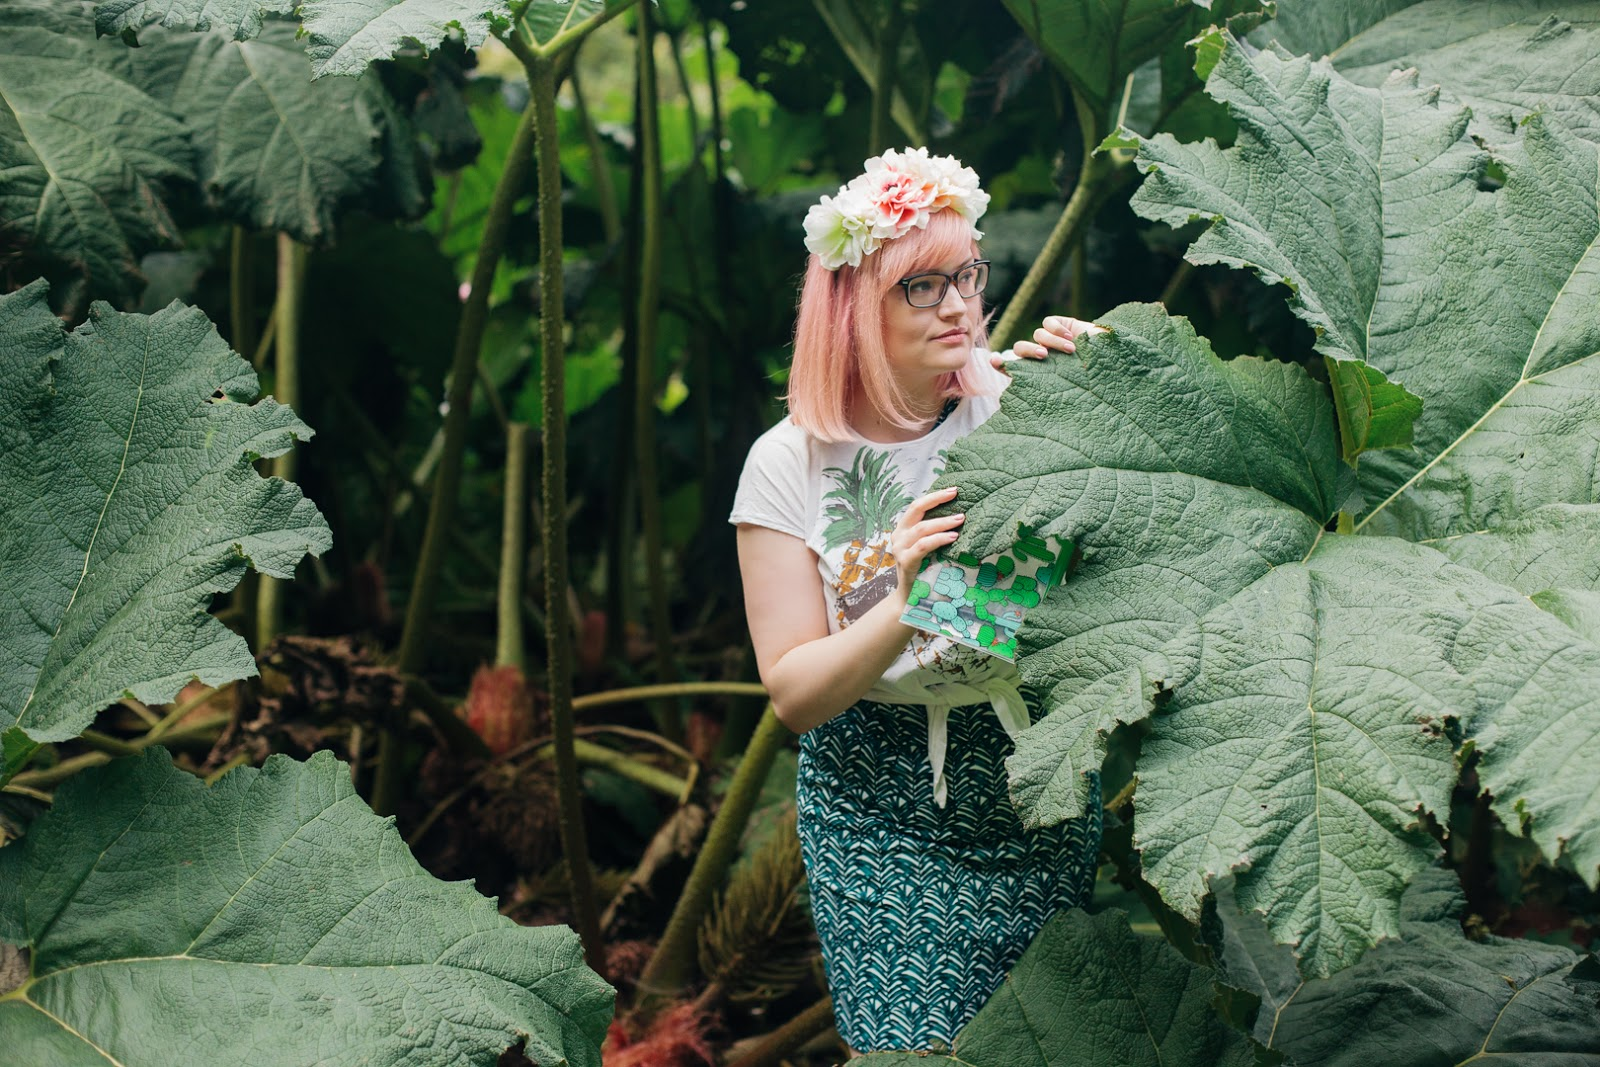 girls with glasses, 2020 opticians, Scottish blogger, peach hair DIY, blogger favourite hair, banana leaf print,Royal Botanical Garden Edinburgh, cryptomgamic garden